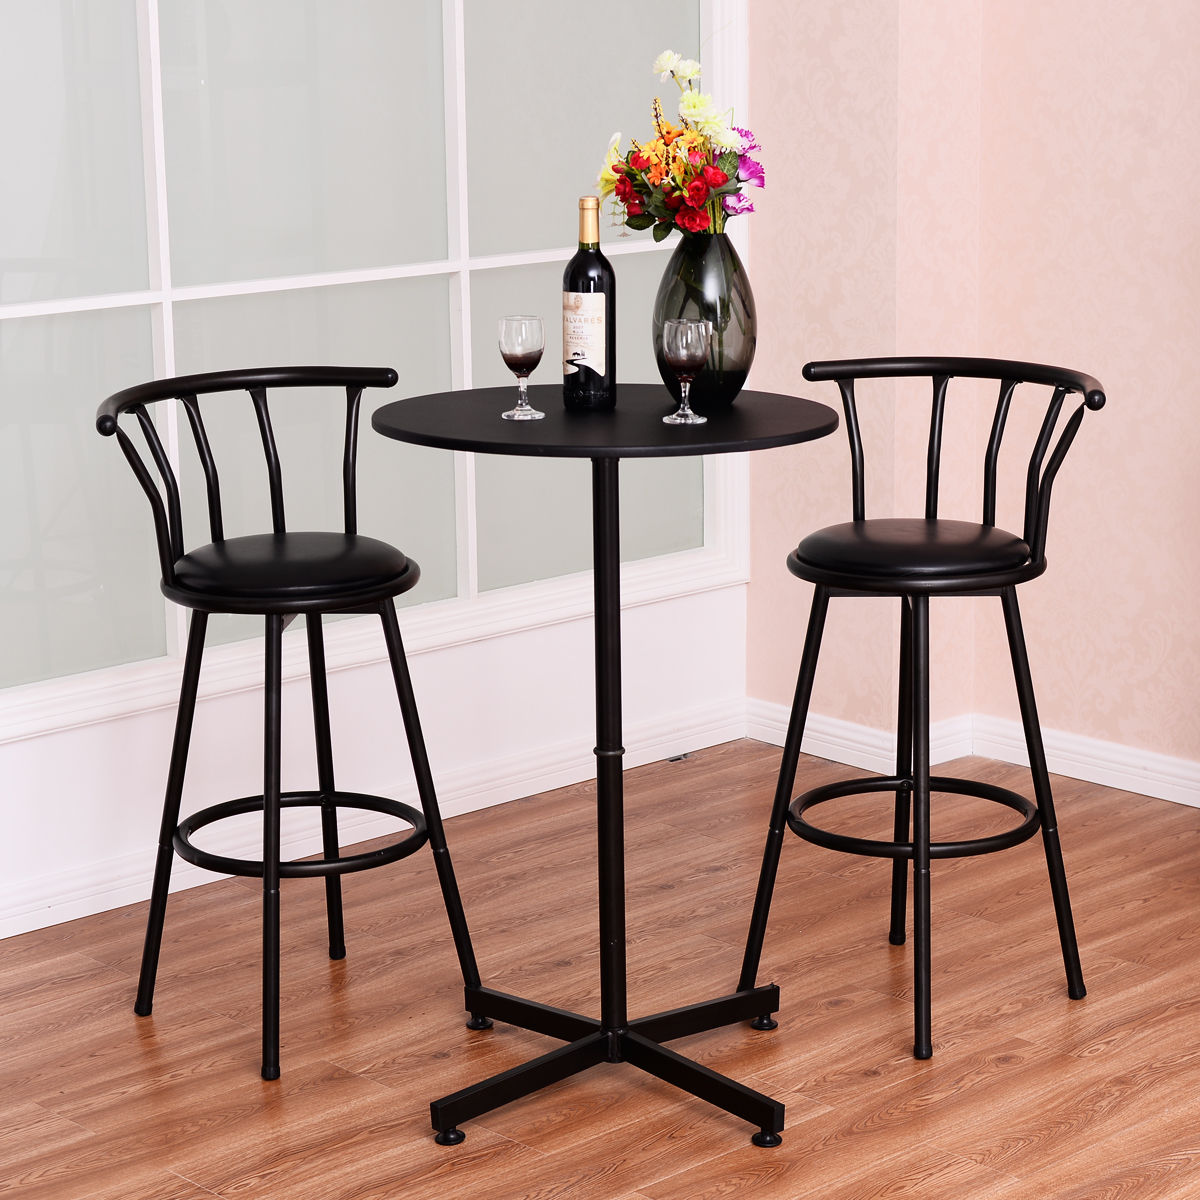 Costway 3 Piece Bar Table Set with 2 Stools Bistro Pub Kitchen Dining Furniture Black & Costway 3 Piece Bar Table Set with 2 Stools Bistro Pub Kitchen ...